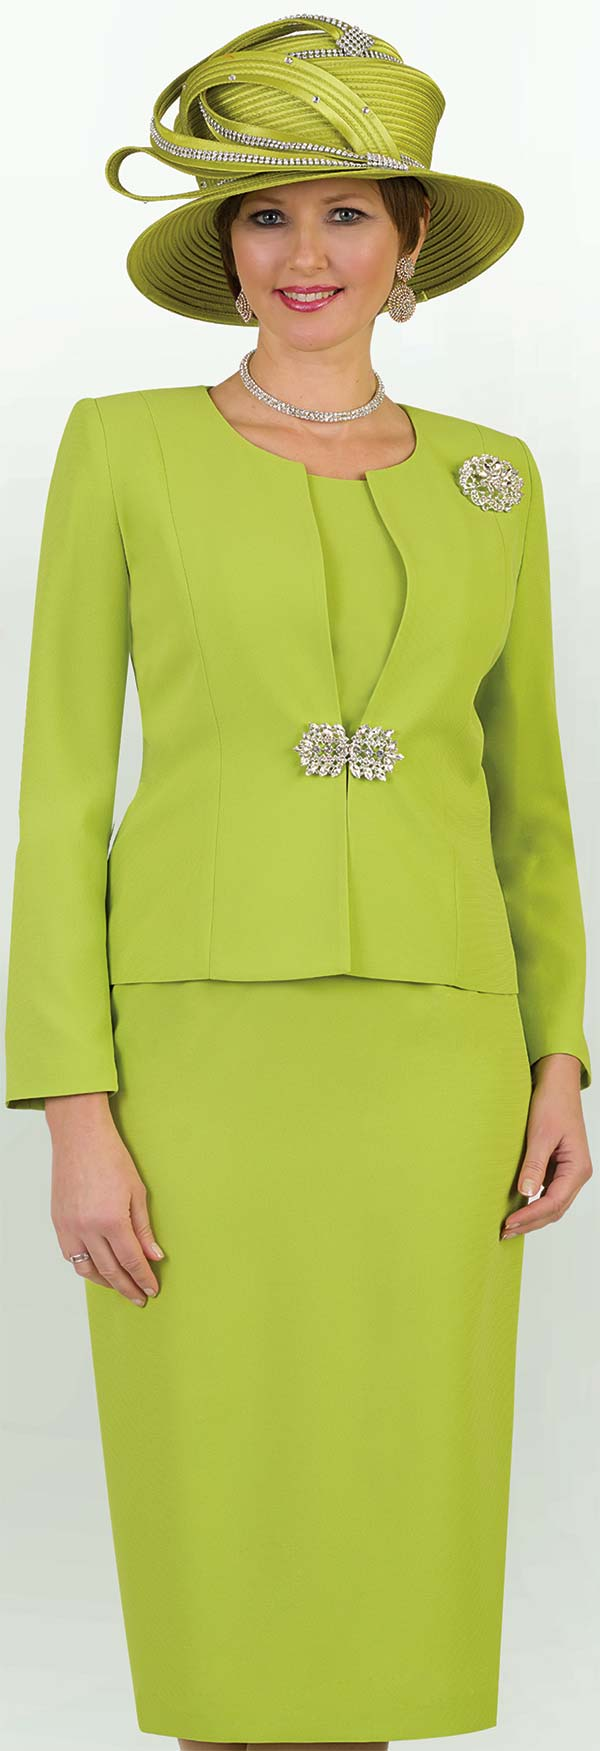 Lily and Taylor 3052-Lime Green - Womens Classic Three Piece Church Suit With Brooch